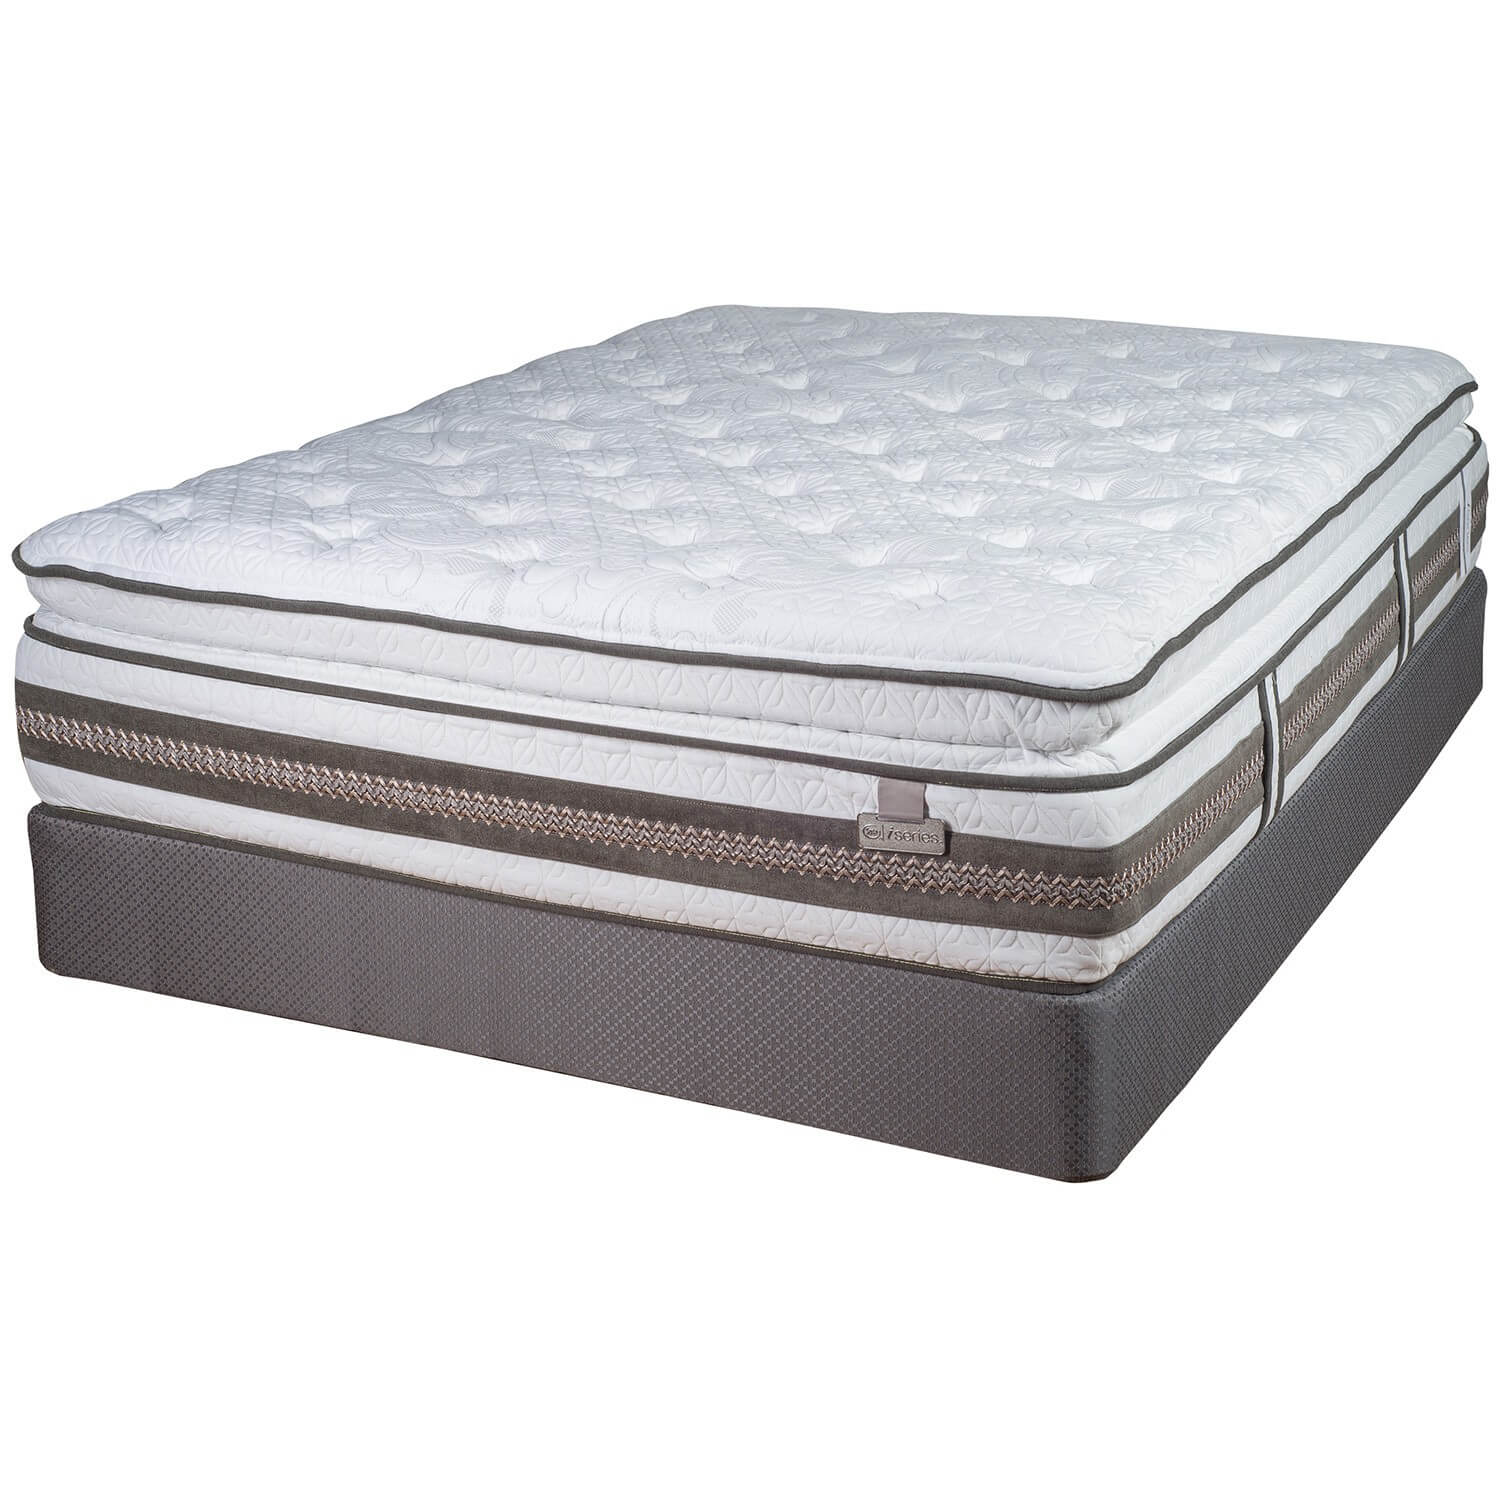 Serta i series king mattress set antique recreations Mattress sale king